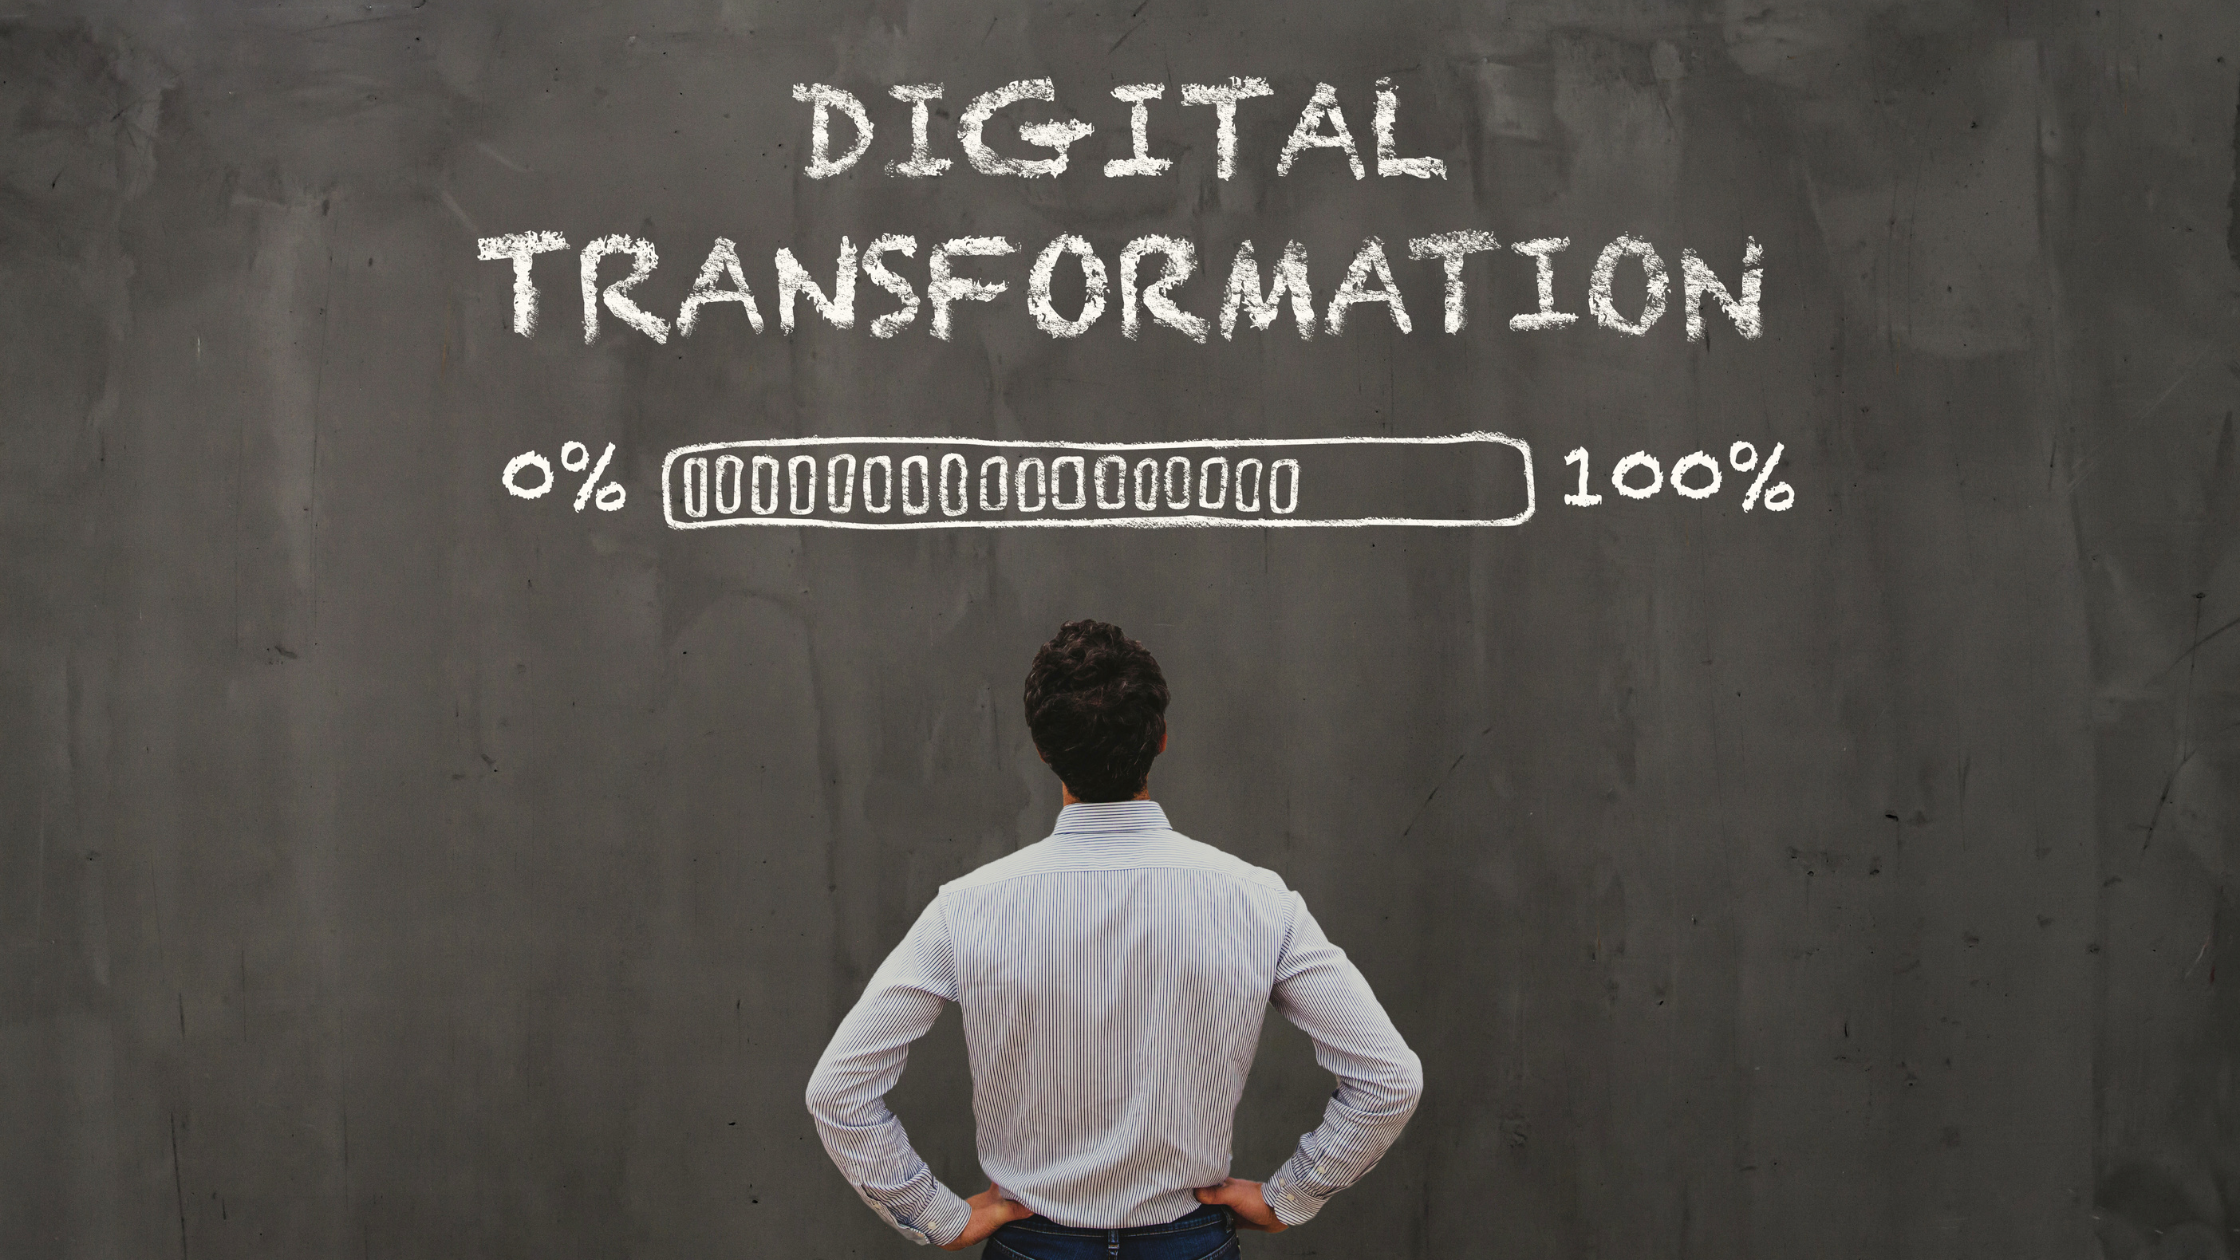 An MNC Digital Transformation Journey